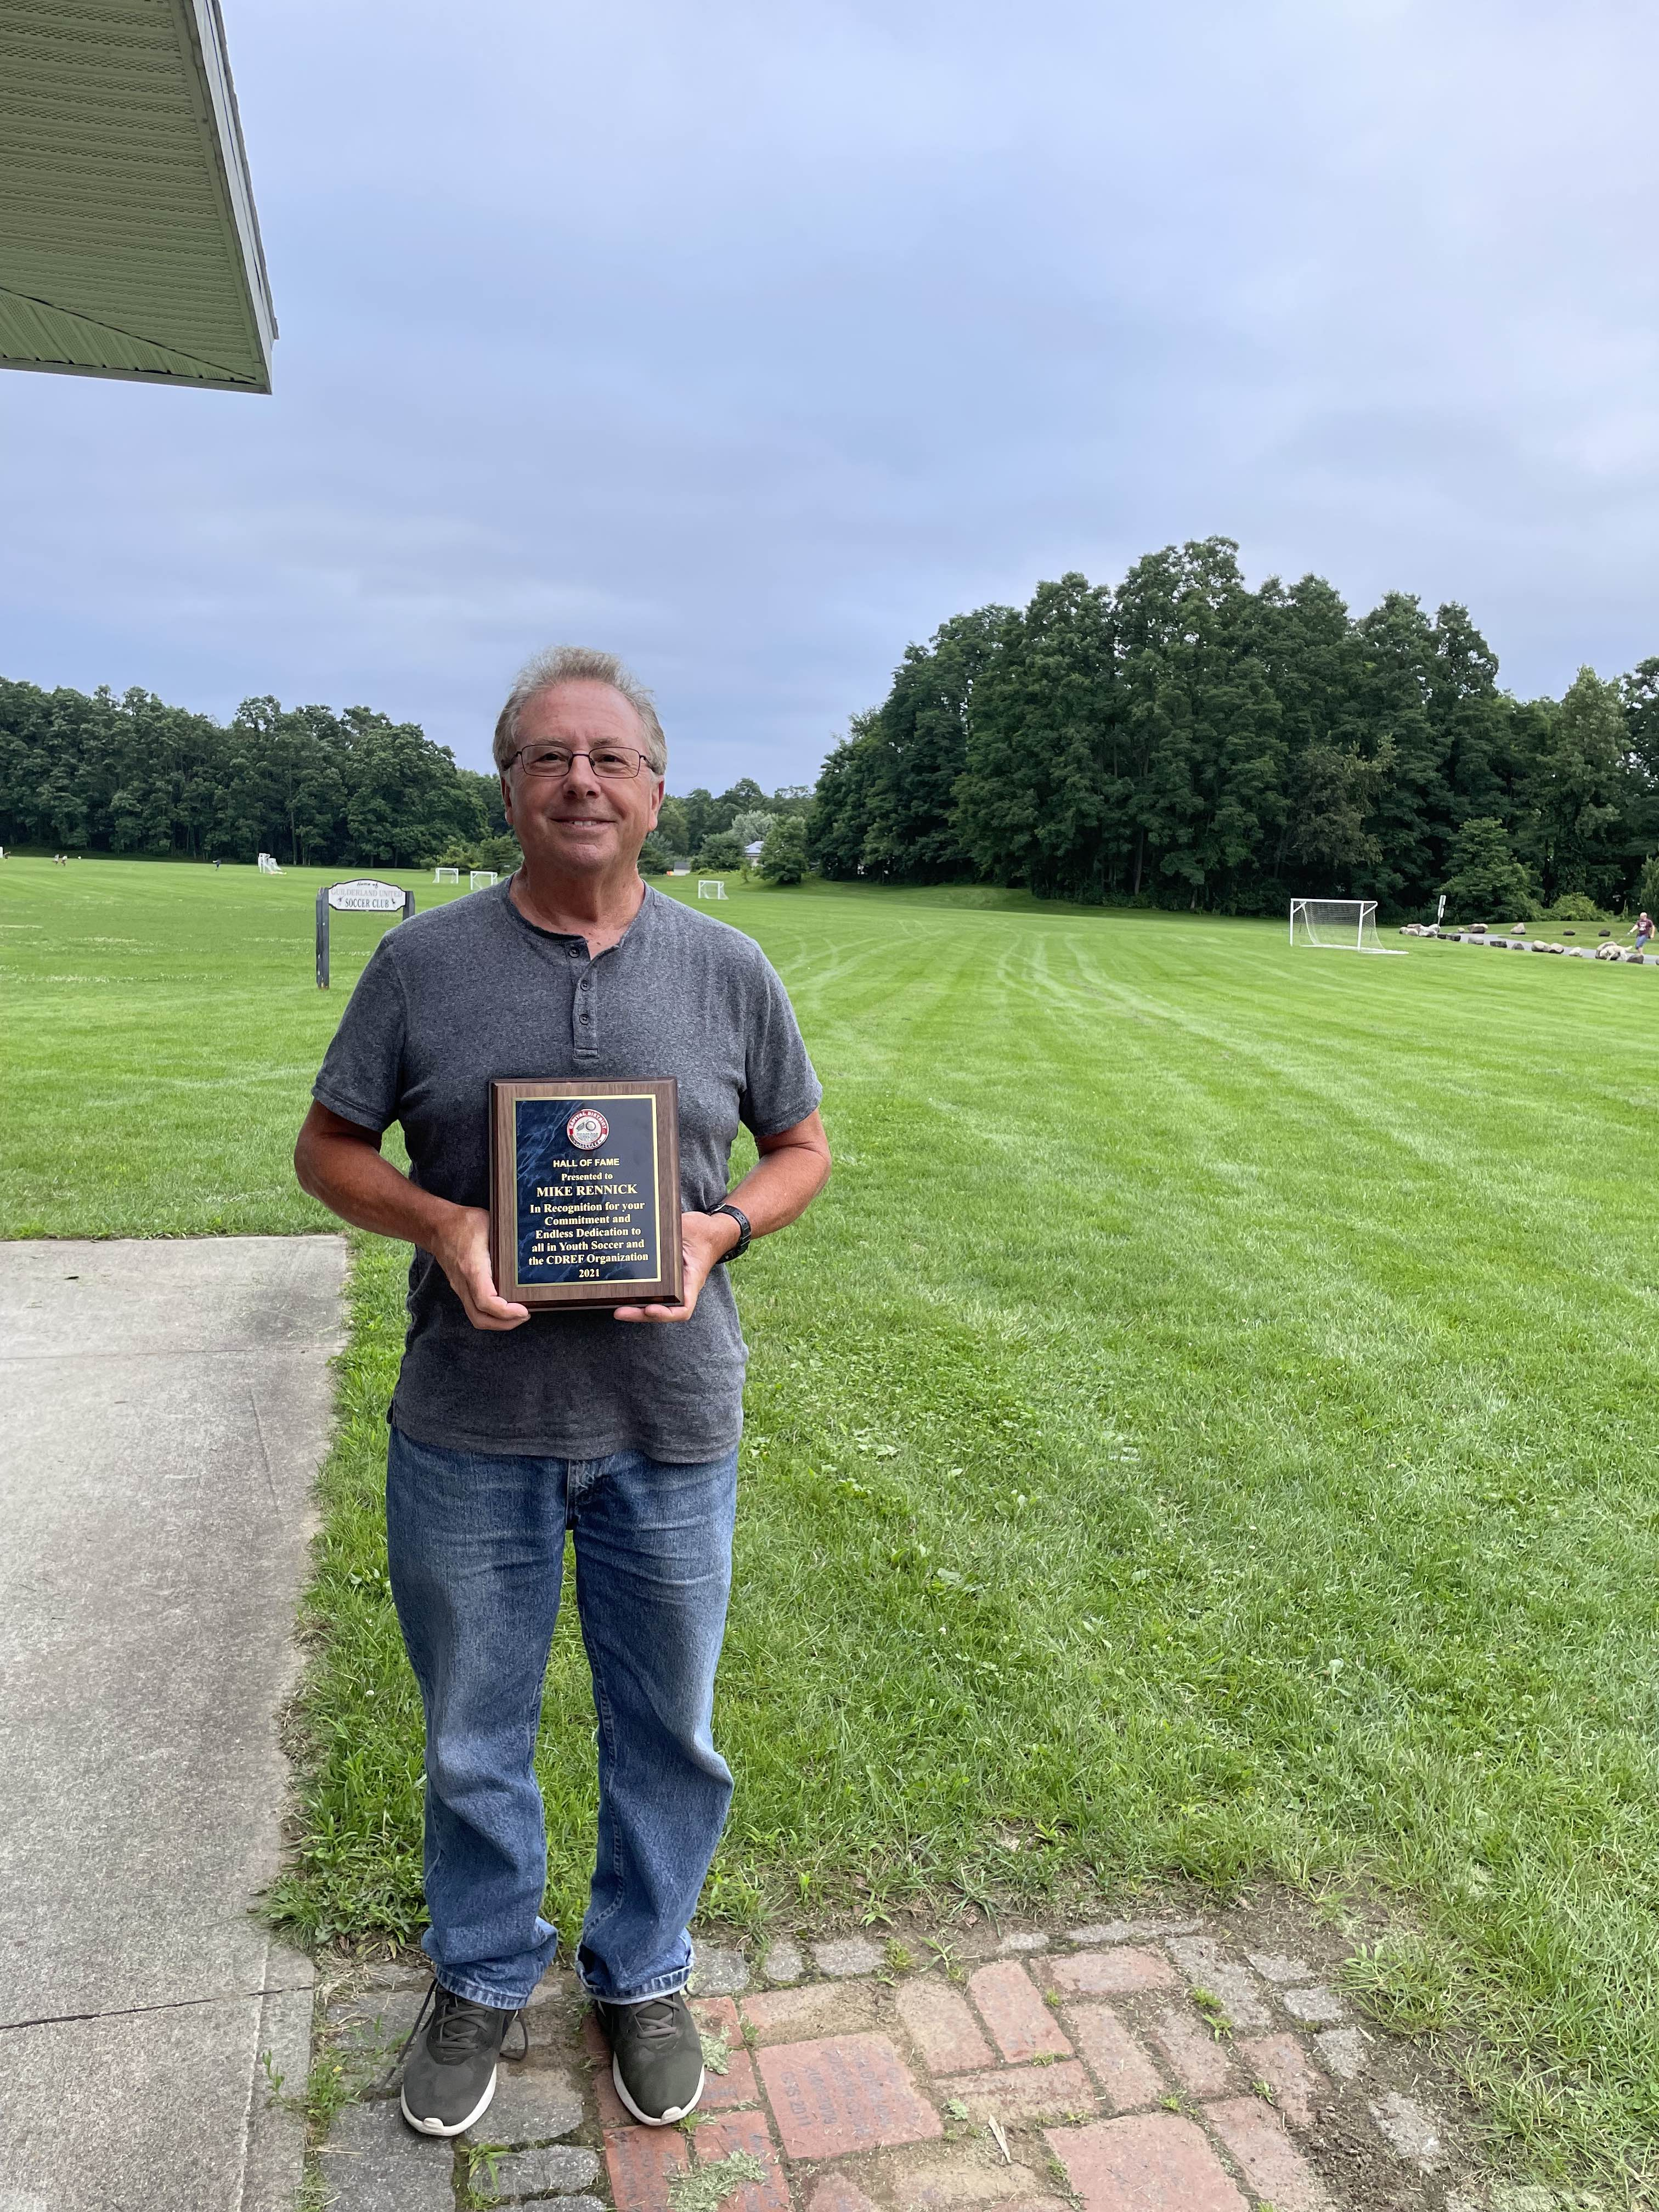 Mike Rennick receives the CDRef Hall of Fame award.